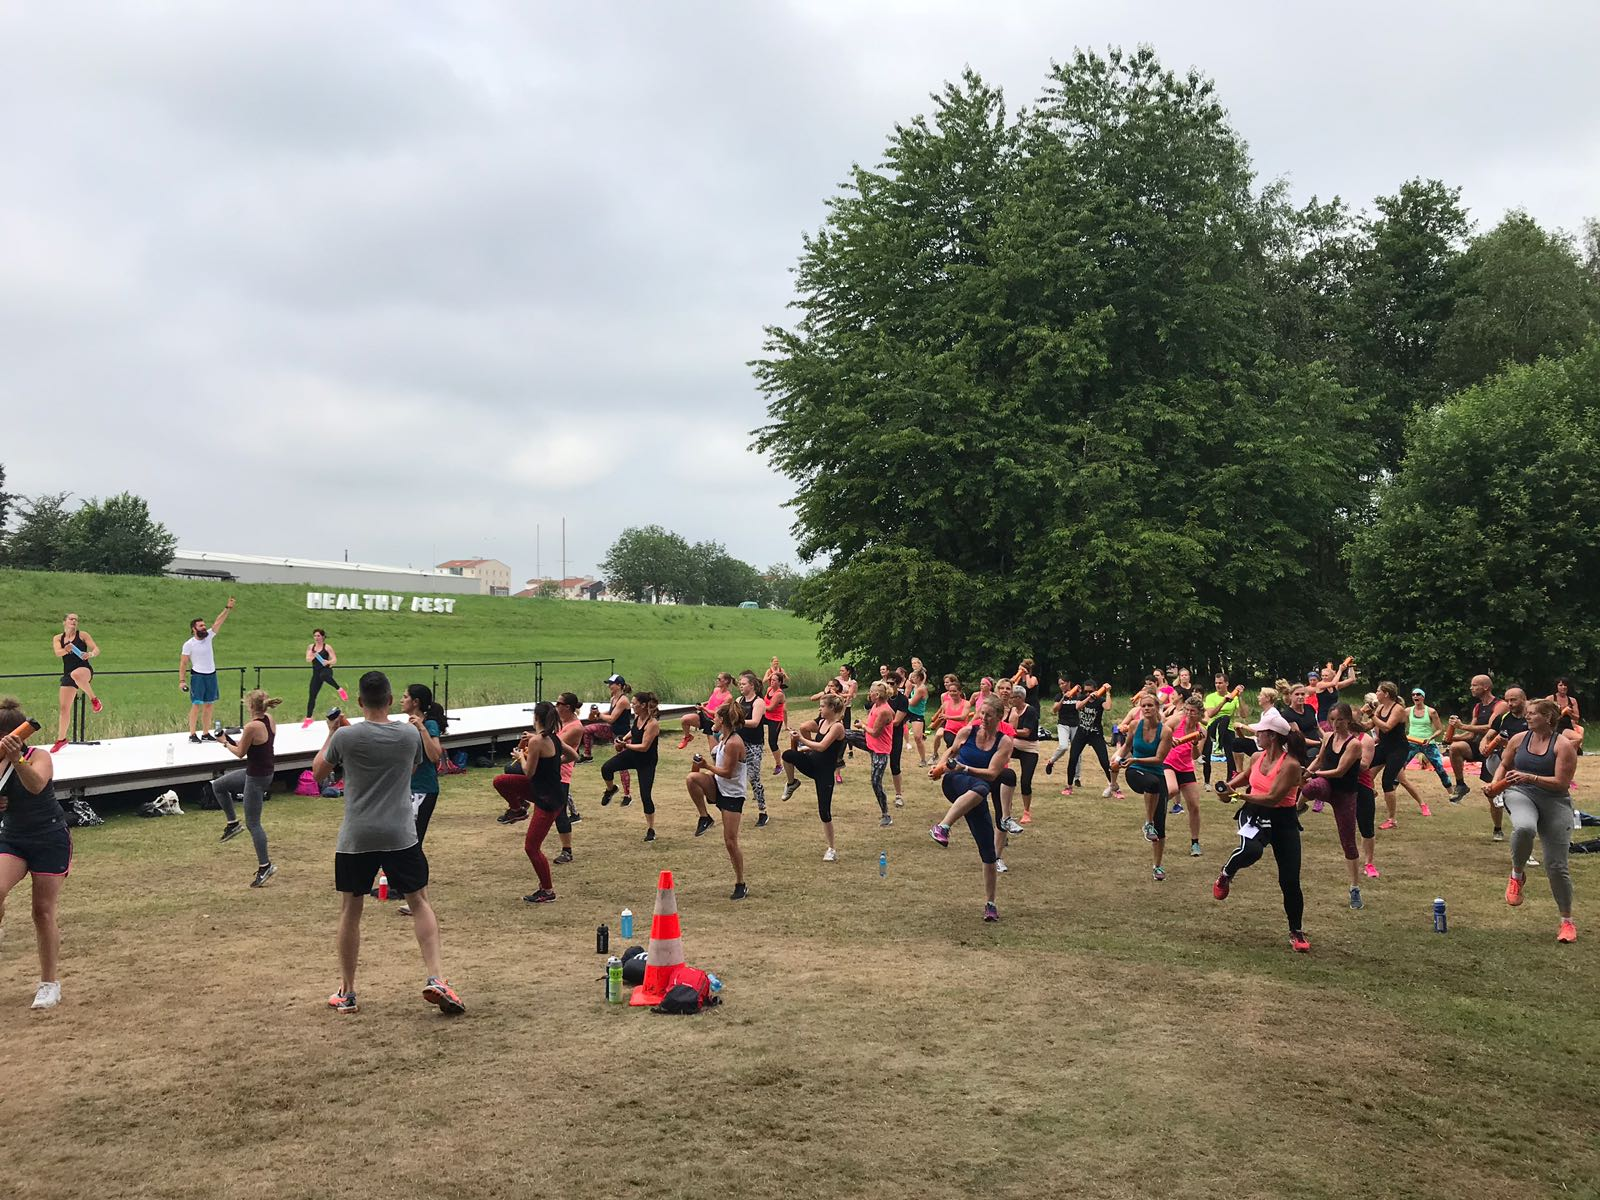 healthy fest, blog healthy fest, healthy fest 2018, groepslessen, groupfitness, House of Workouts, Xcore, BRN, workout, mamablog, lifestyleblog, mamalifestyleblog, La Log, lalog.nl